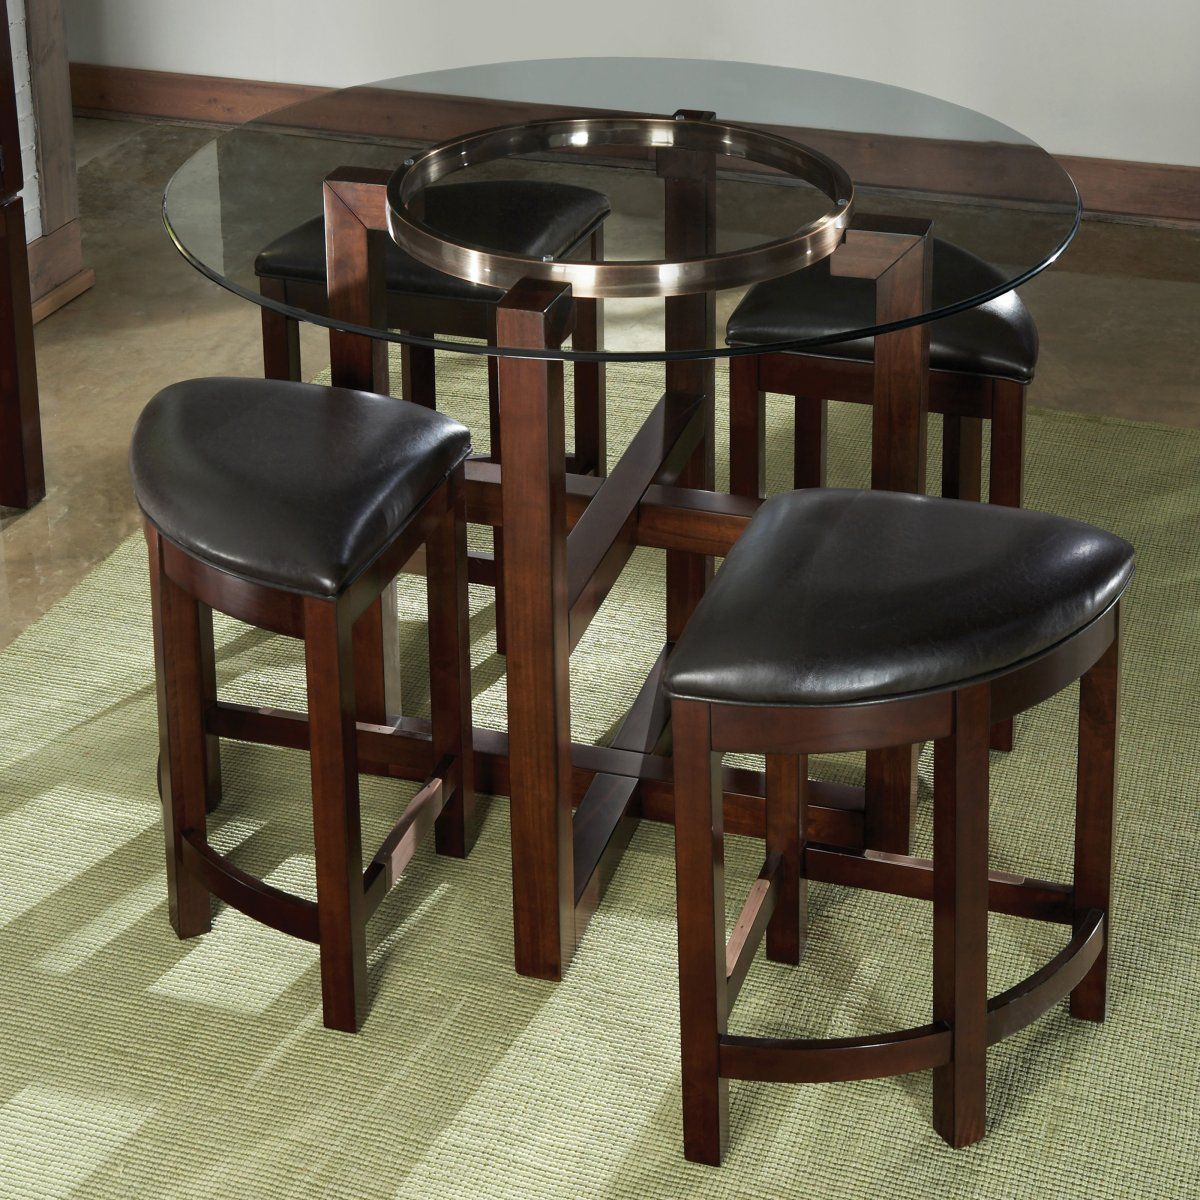 Nesting Stools Counter Height Set